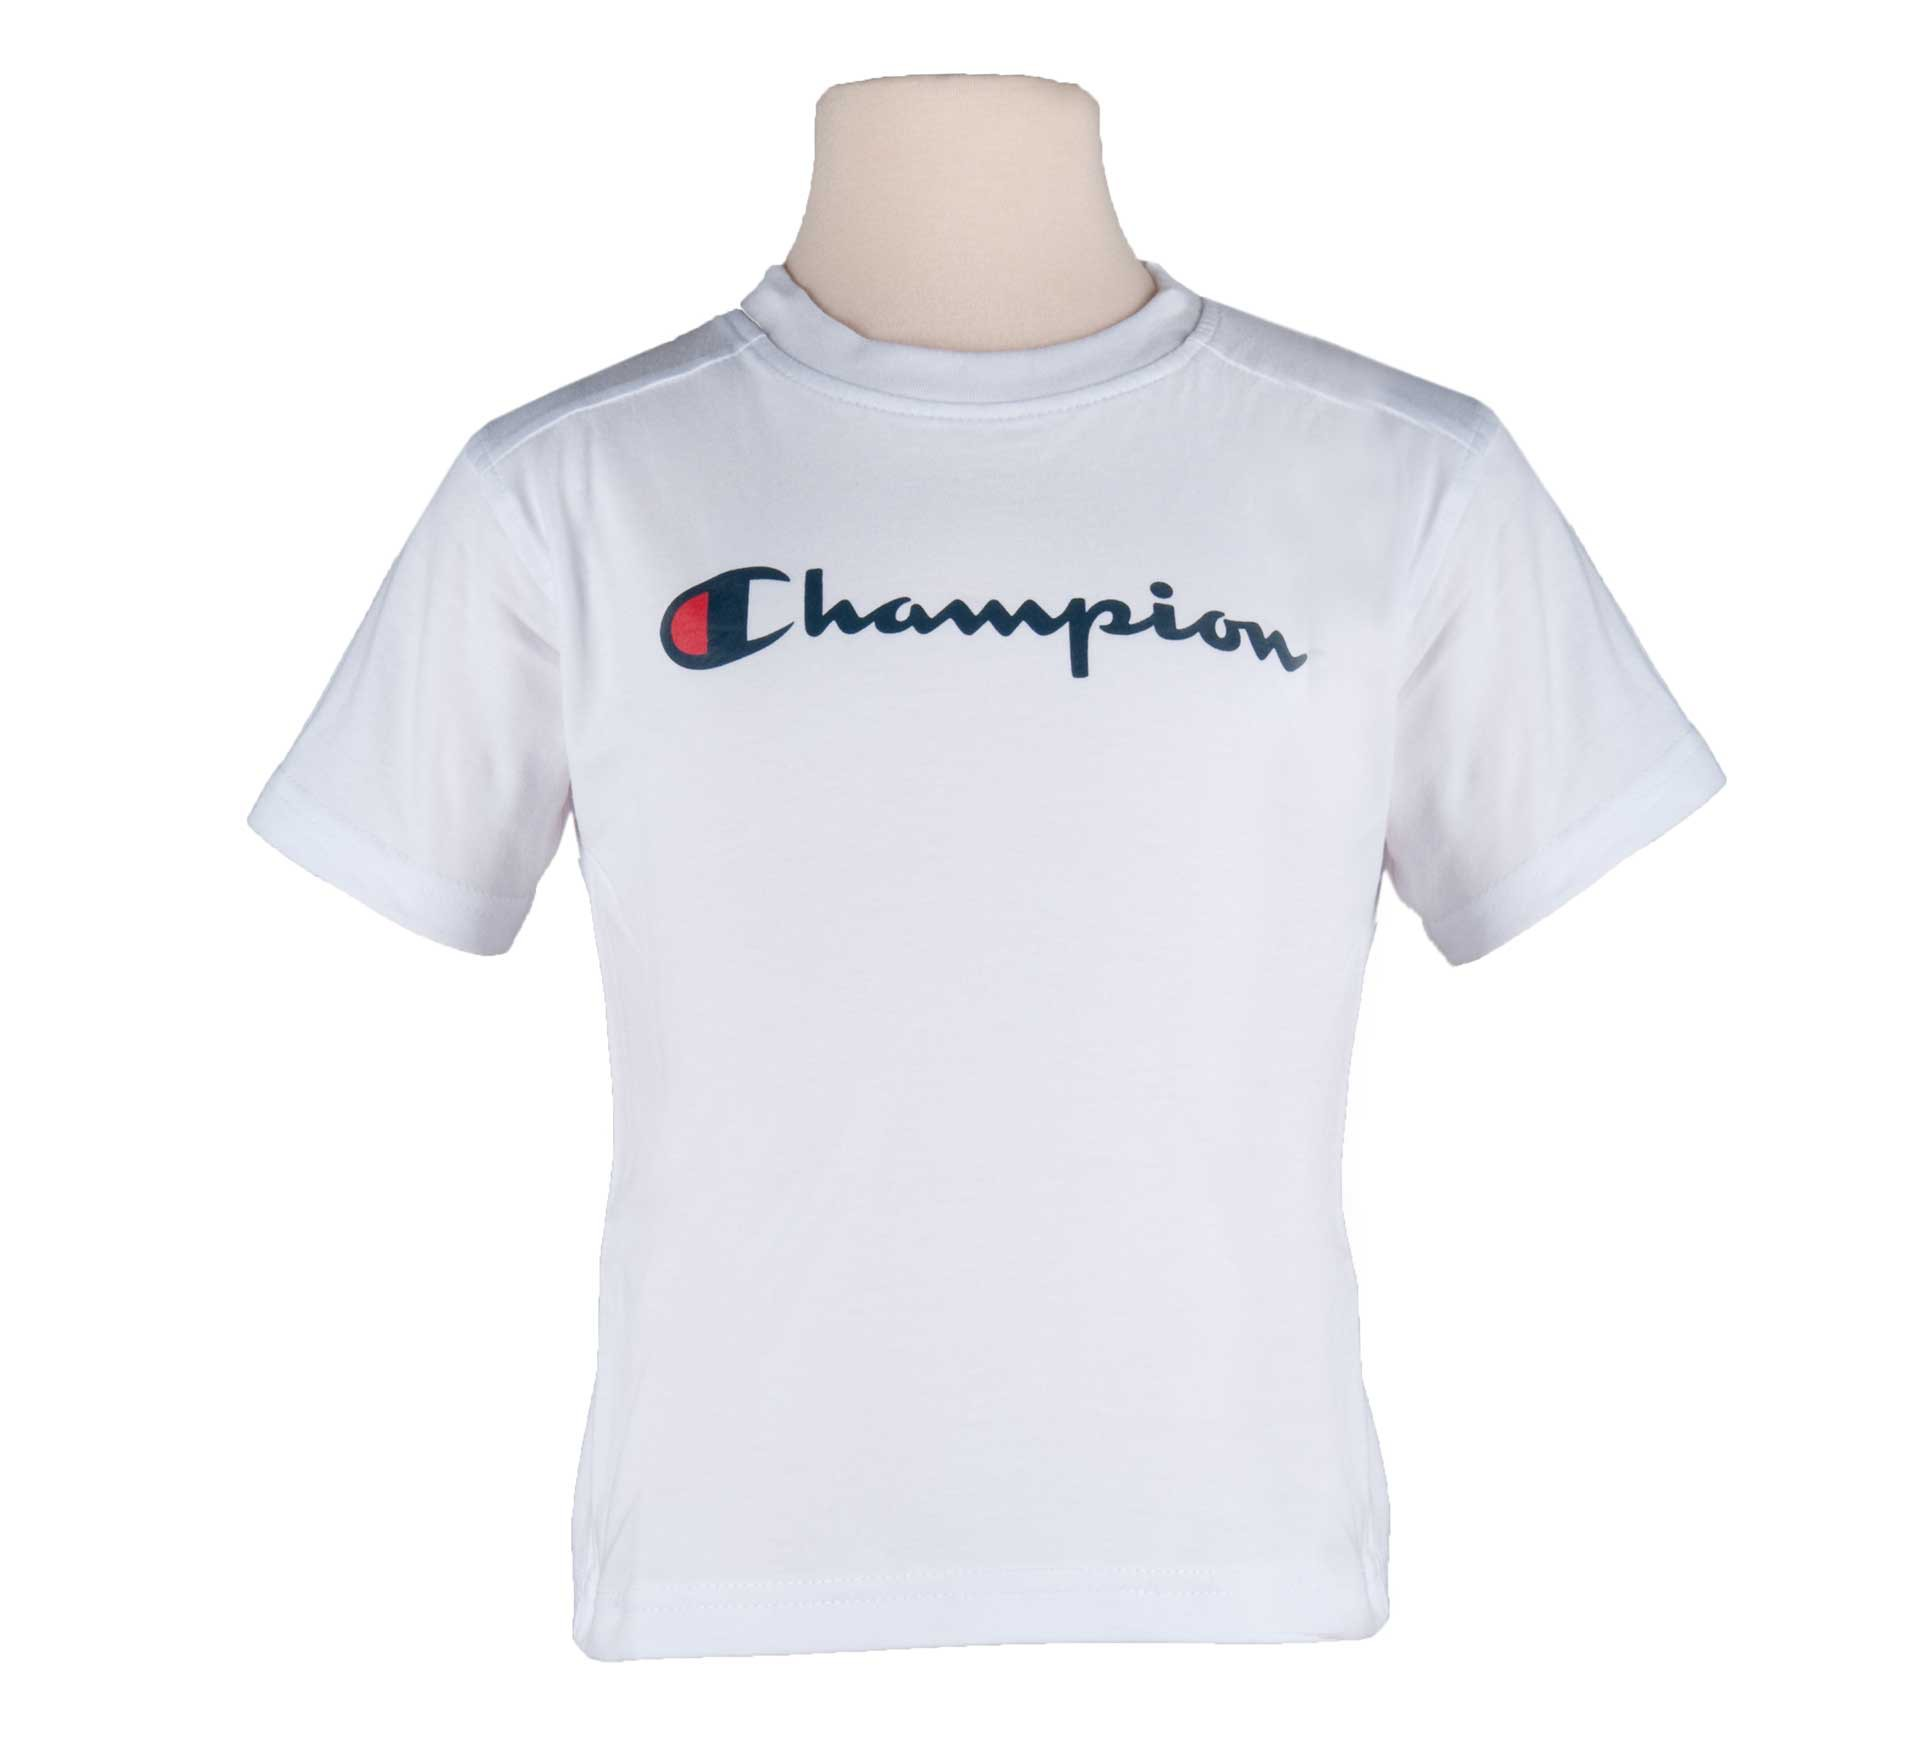 fe00c9680 champion - Shop for and Buy champion Online - Macy s